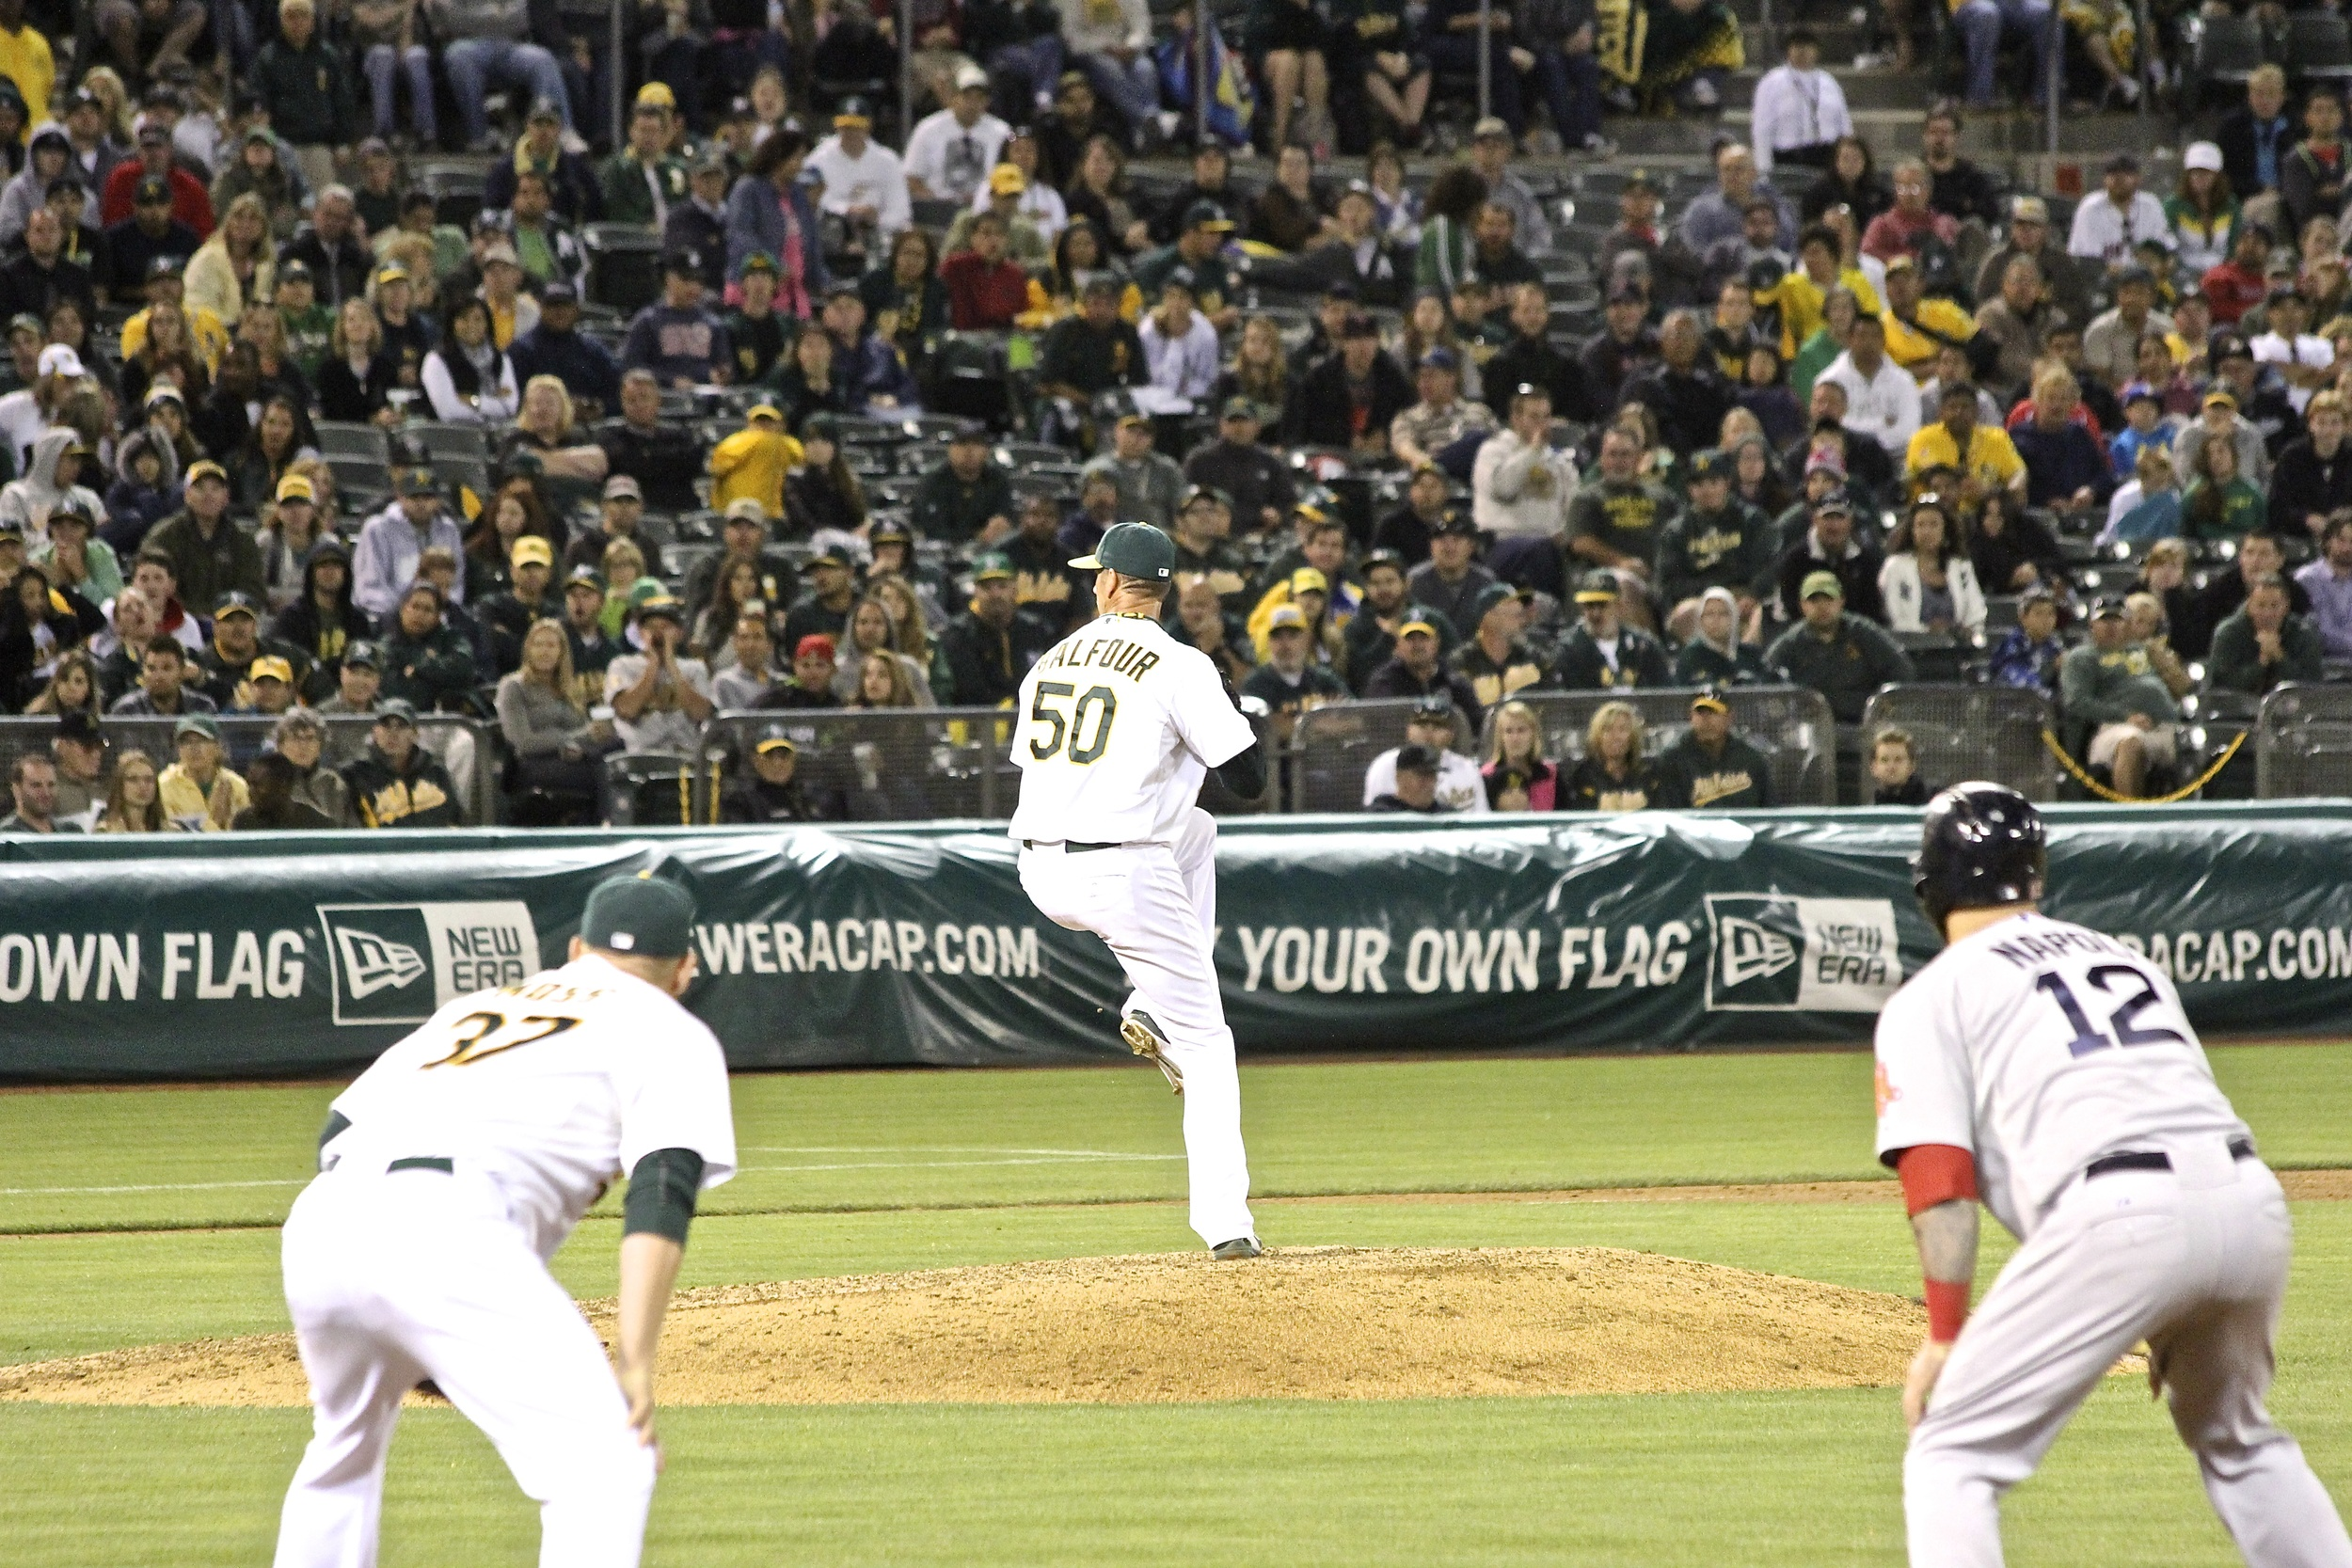 Grant Balfour gets the save